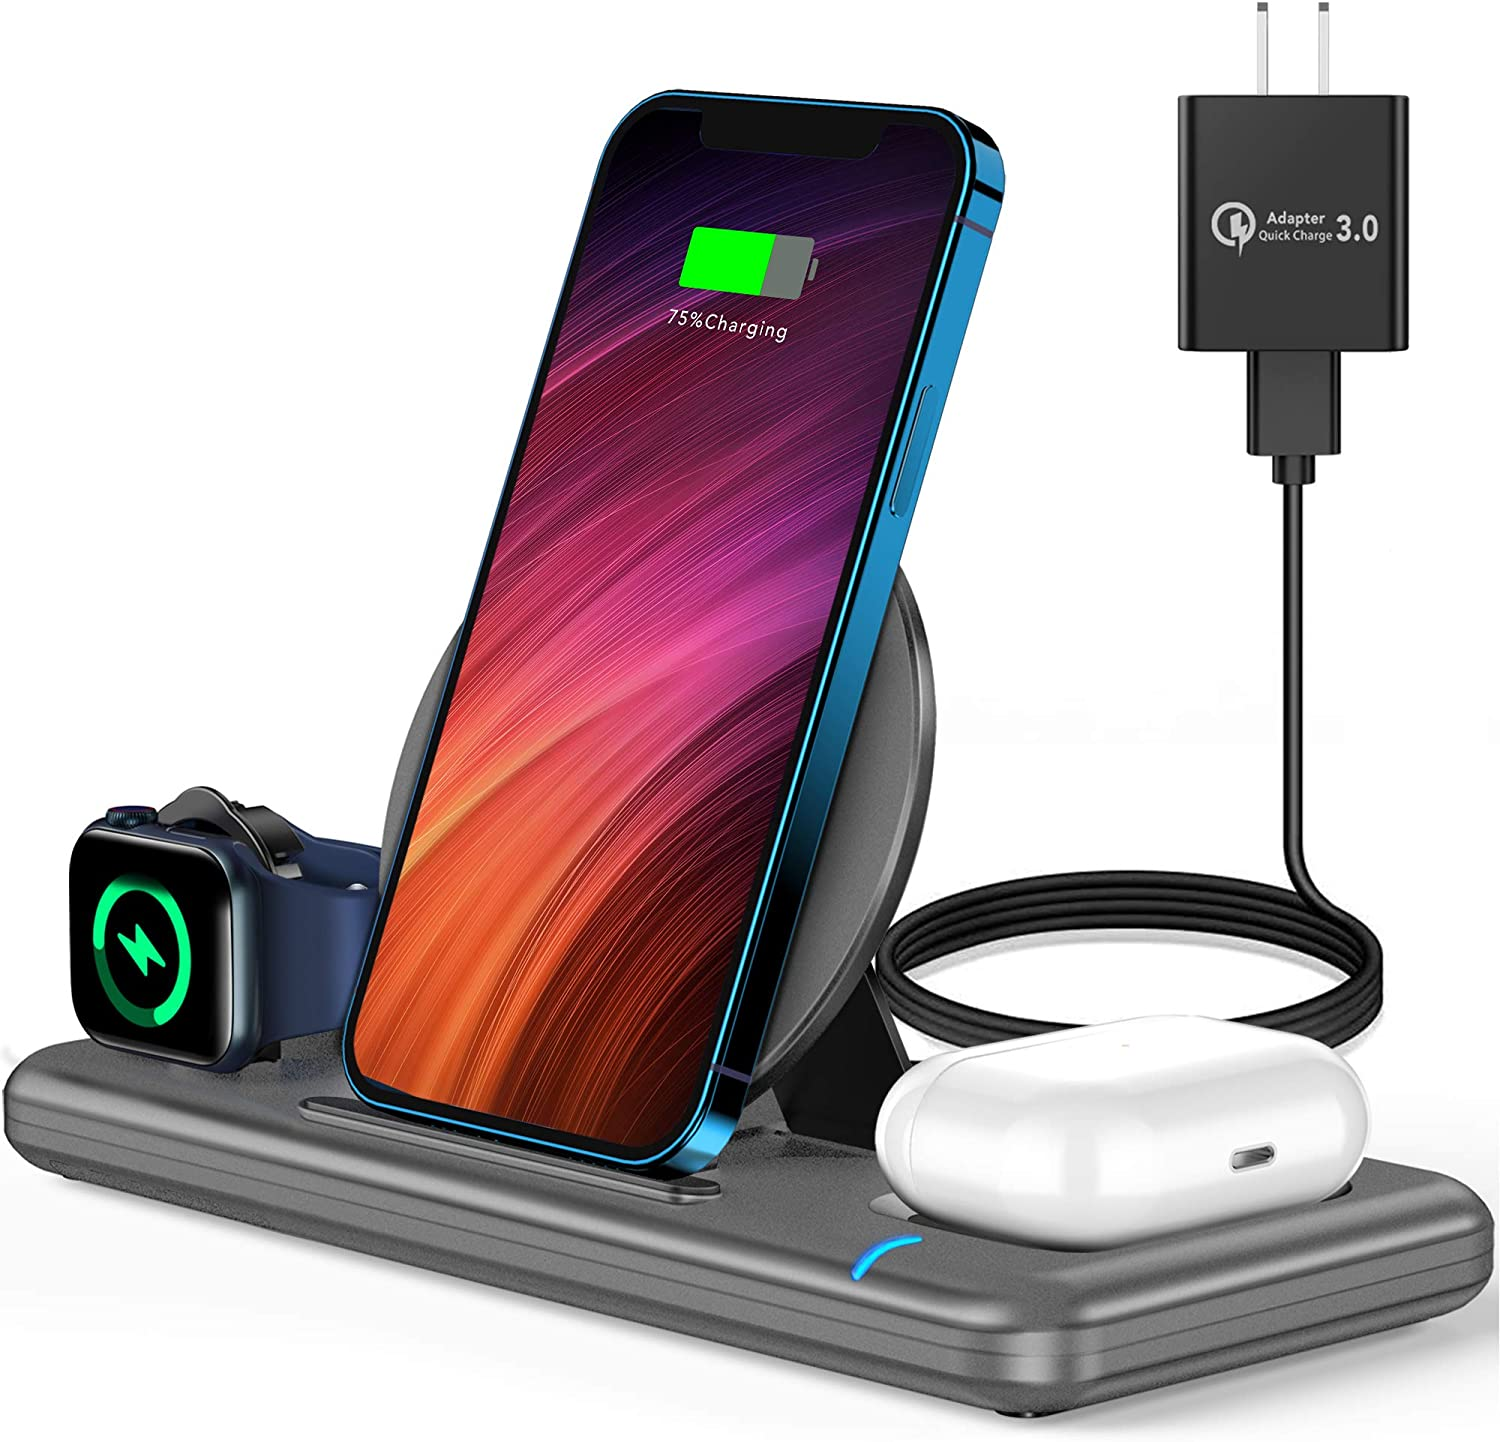 Wireless Charger, 3 in 1 Wireless Charger Station for Apple Watch SE 6 5 4 3 2, AirPods Pro/2, Wireless Charging Stand Dock with QC3.0 Adapter for iPhone 12 11 Pro Max Xs X Xr 8, Samsung (Grey)